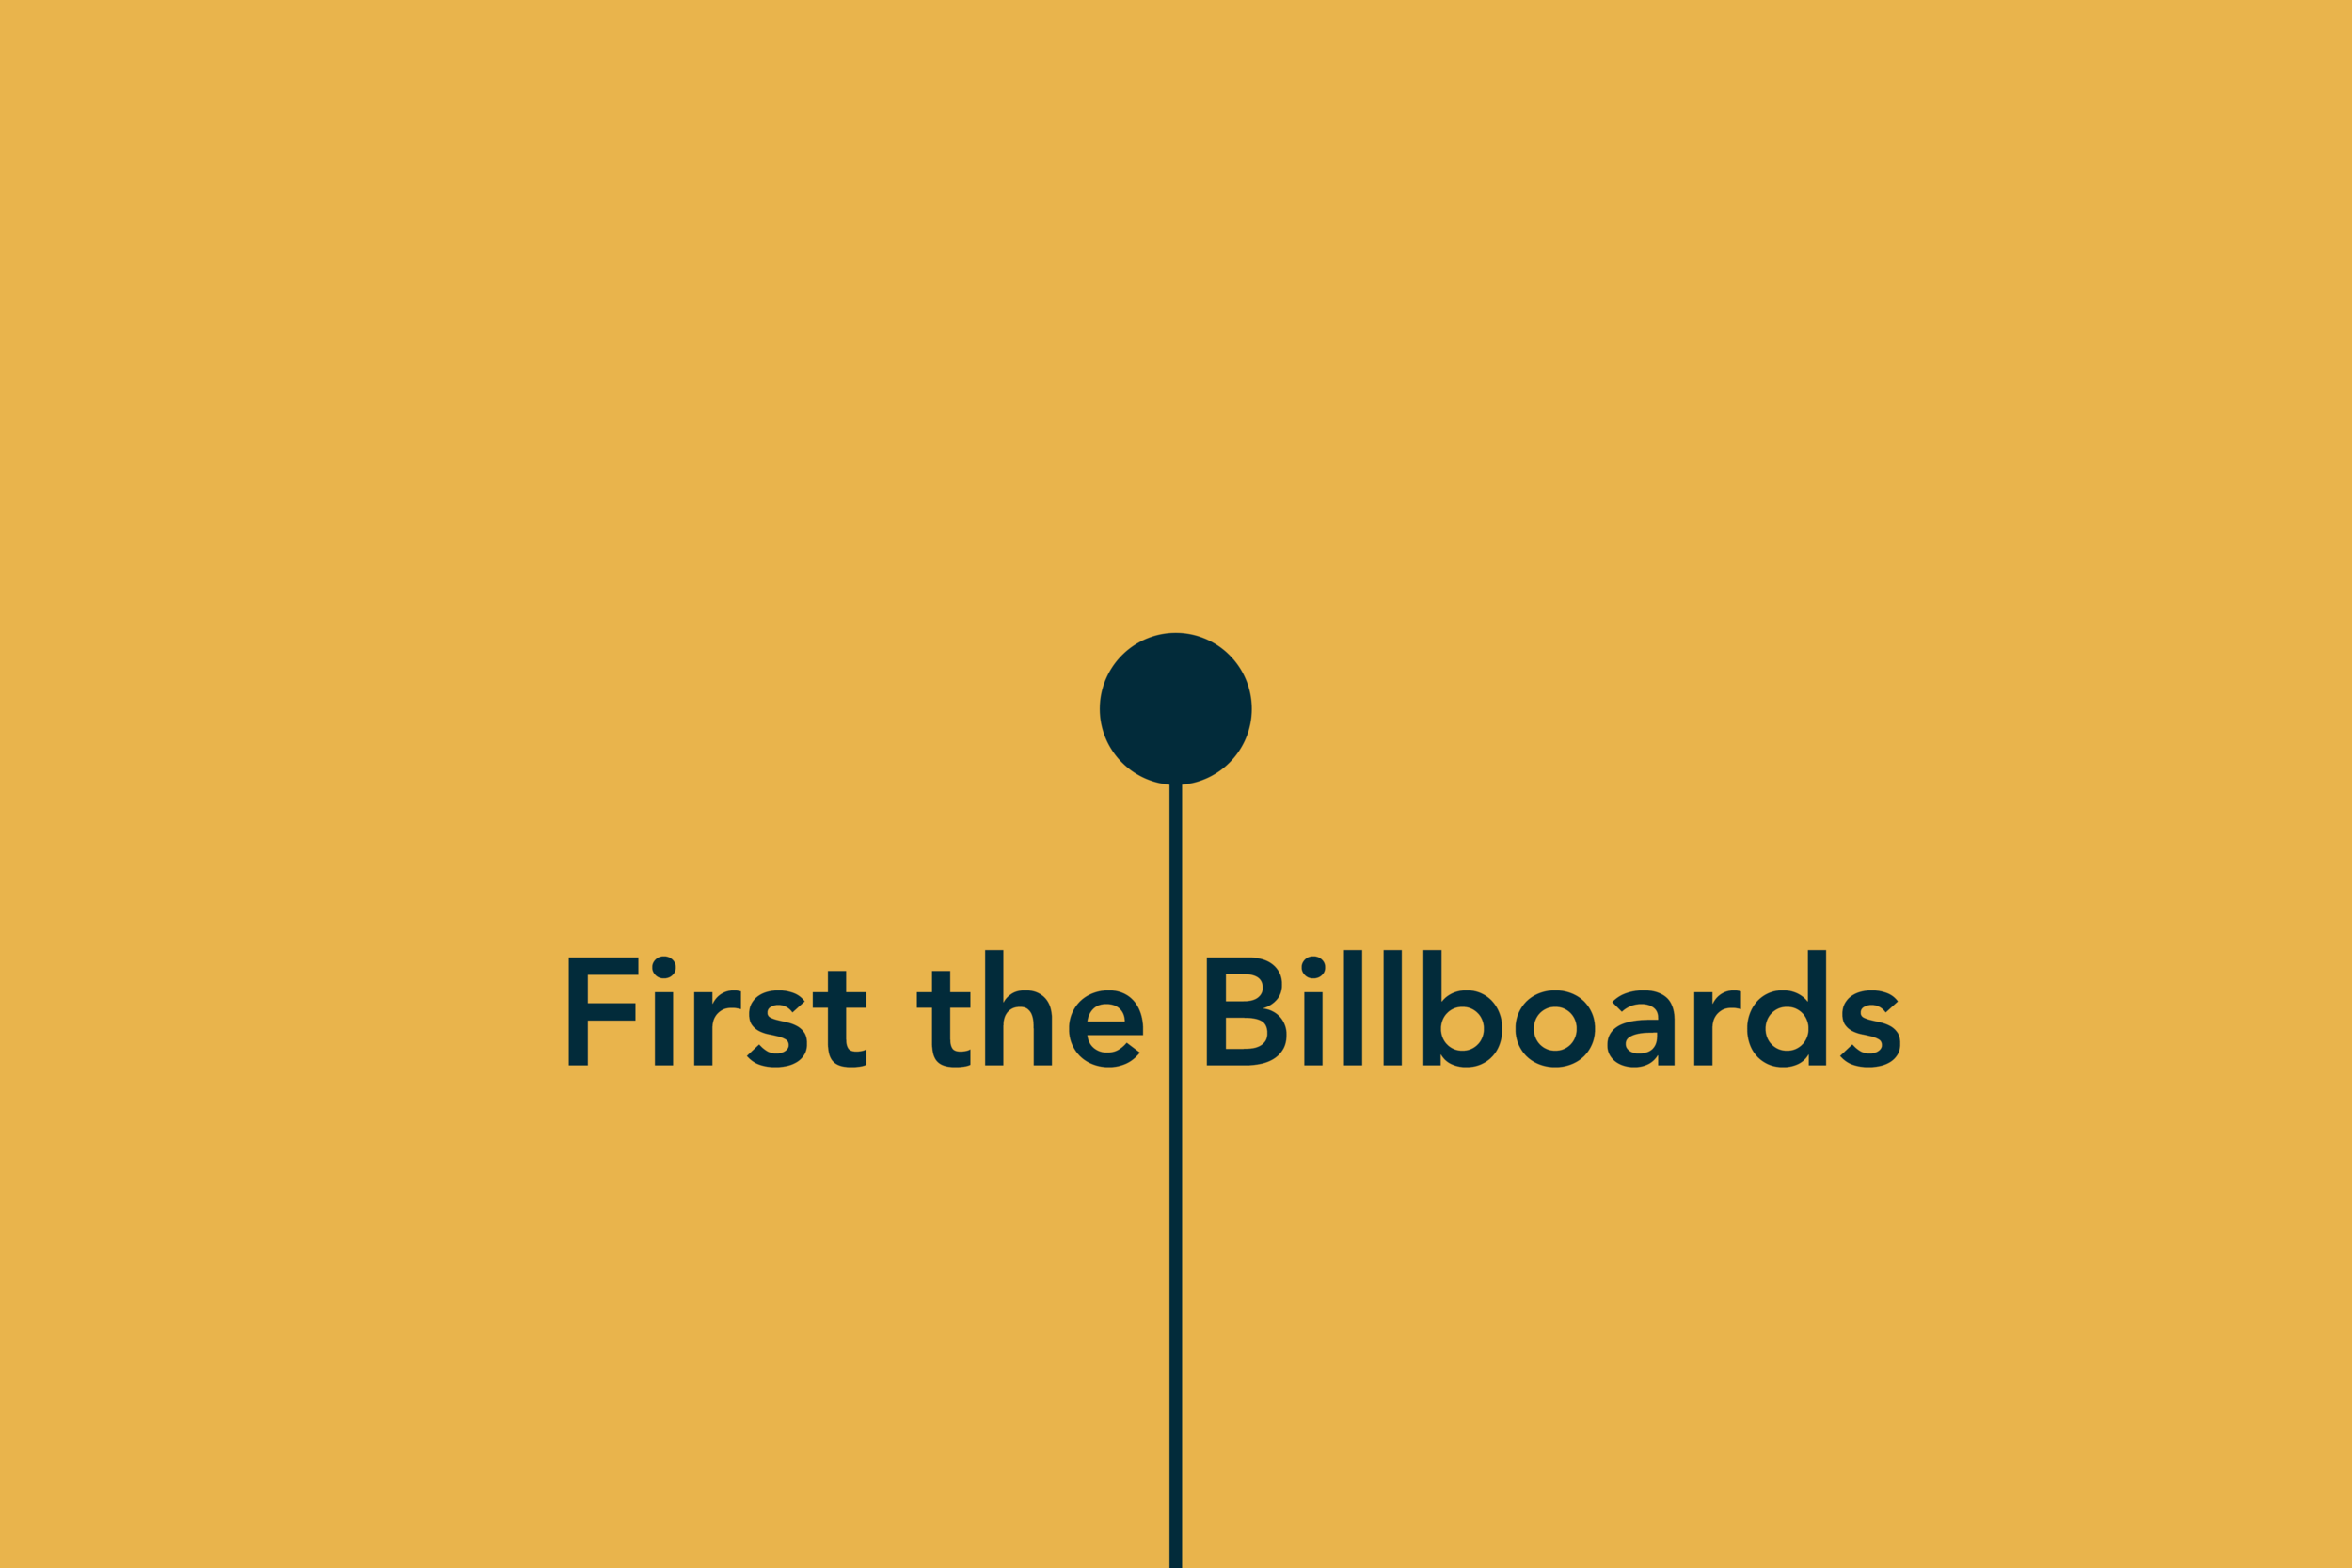 First the Billboards.png